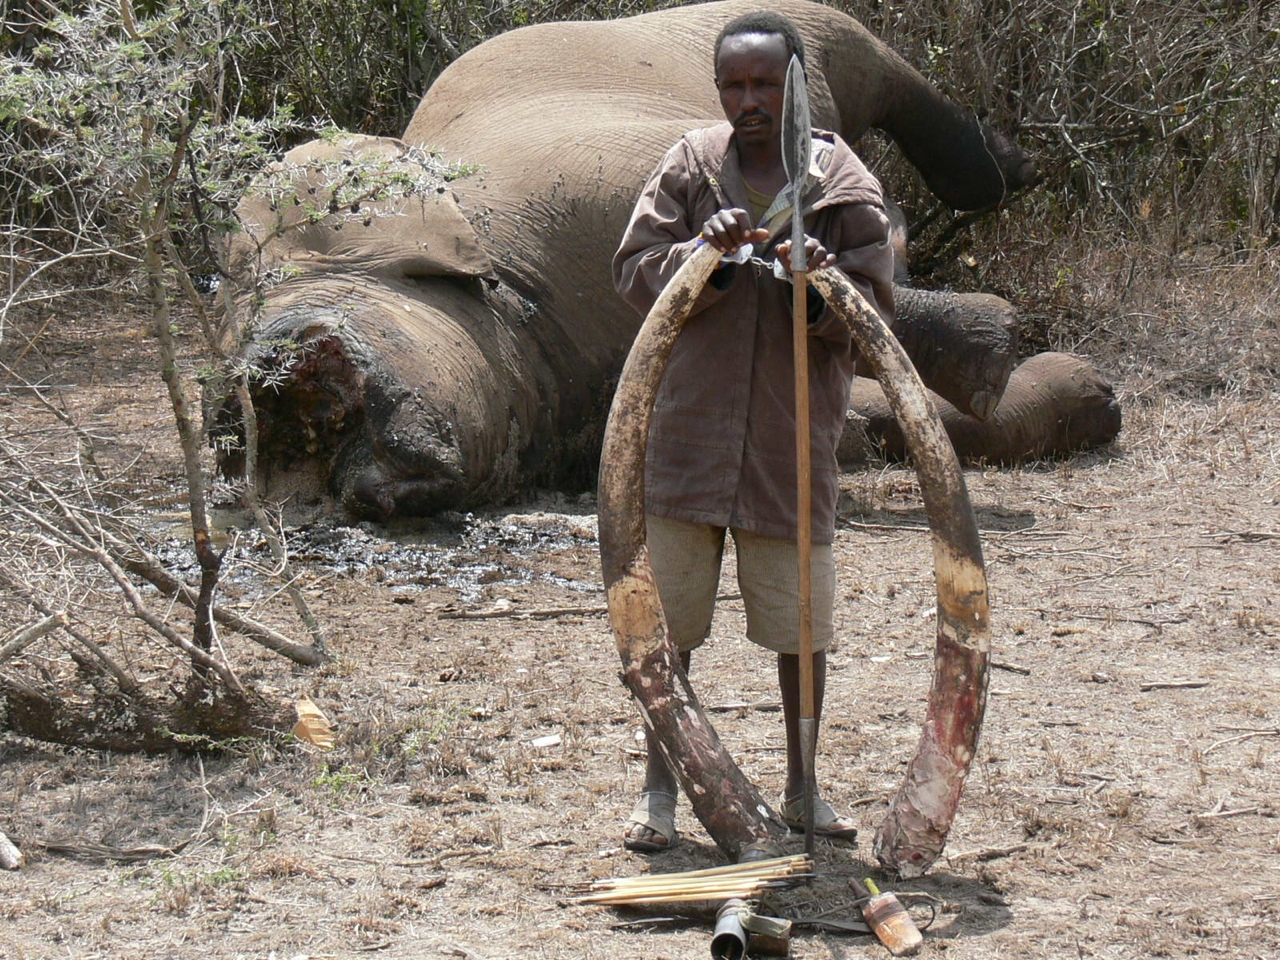 Elephant poaching - ThingLink